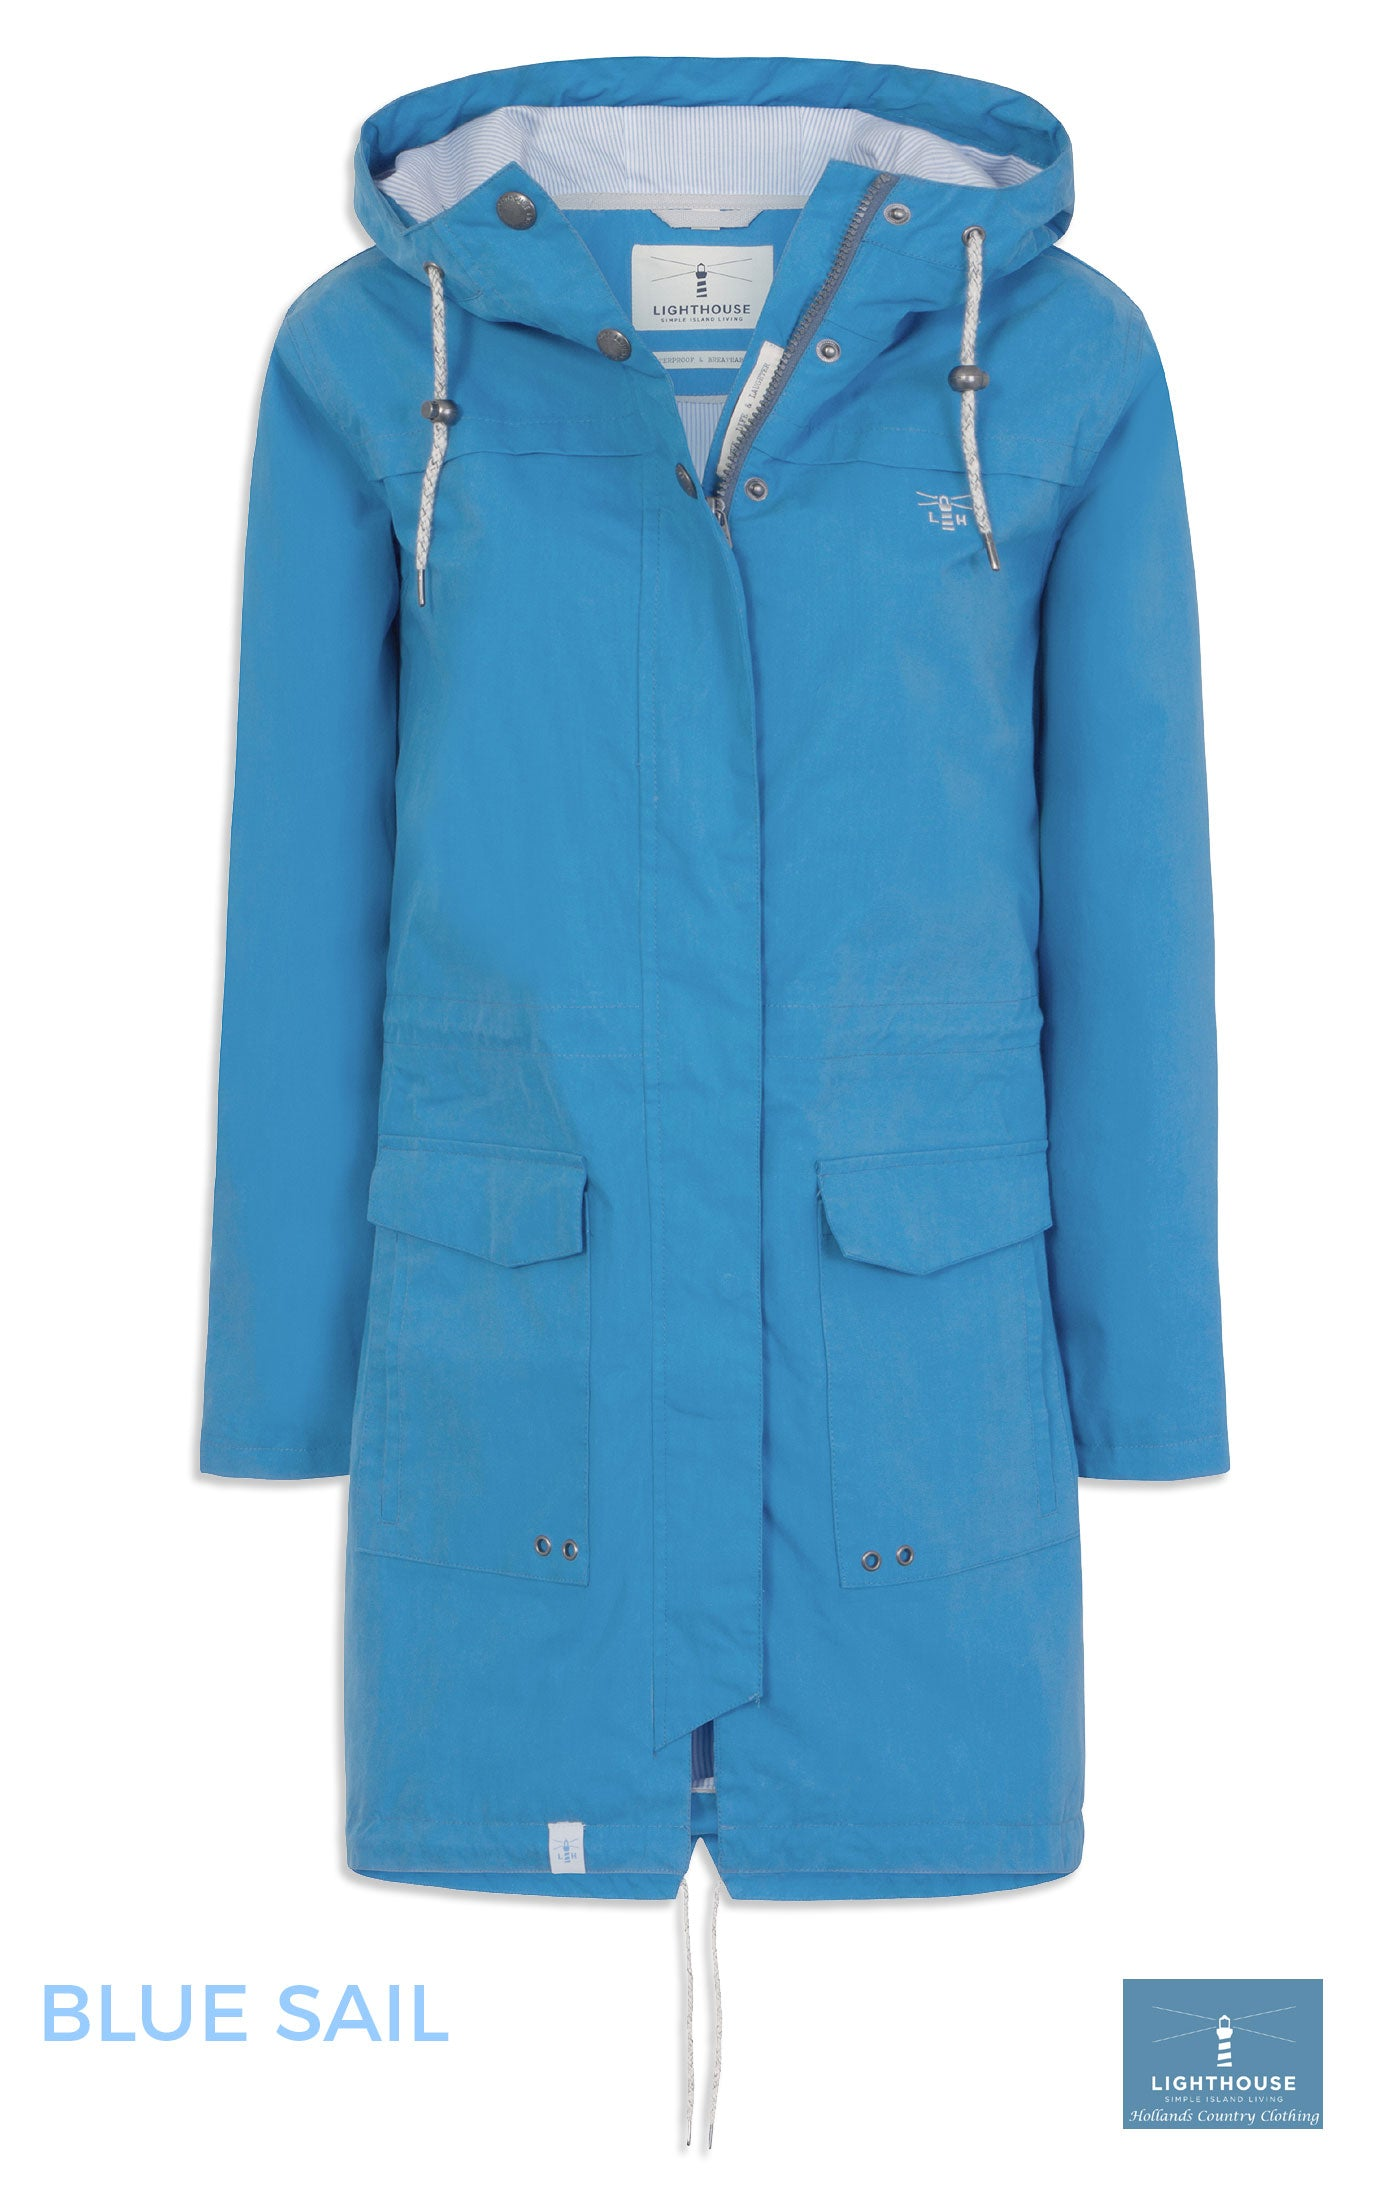 Lighthouse Paige Parka Waterproof Jacket in  Blue sail